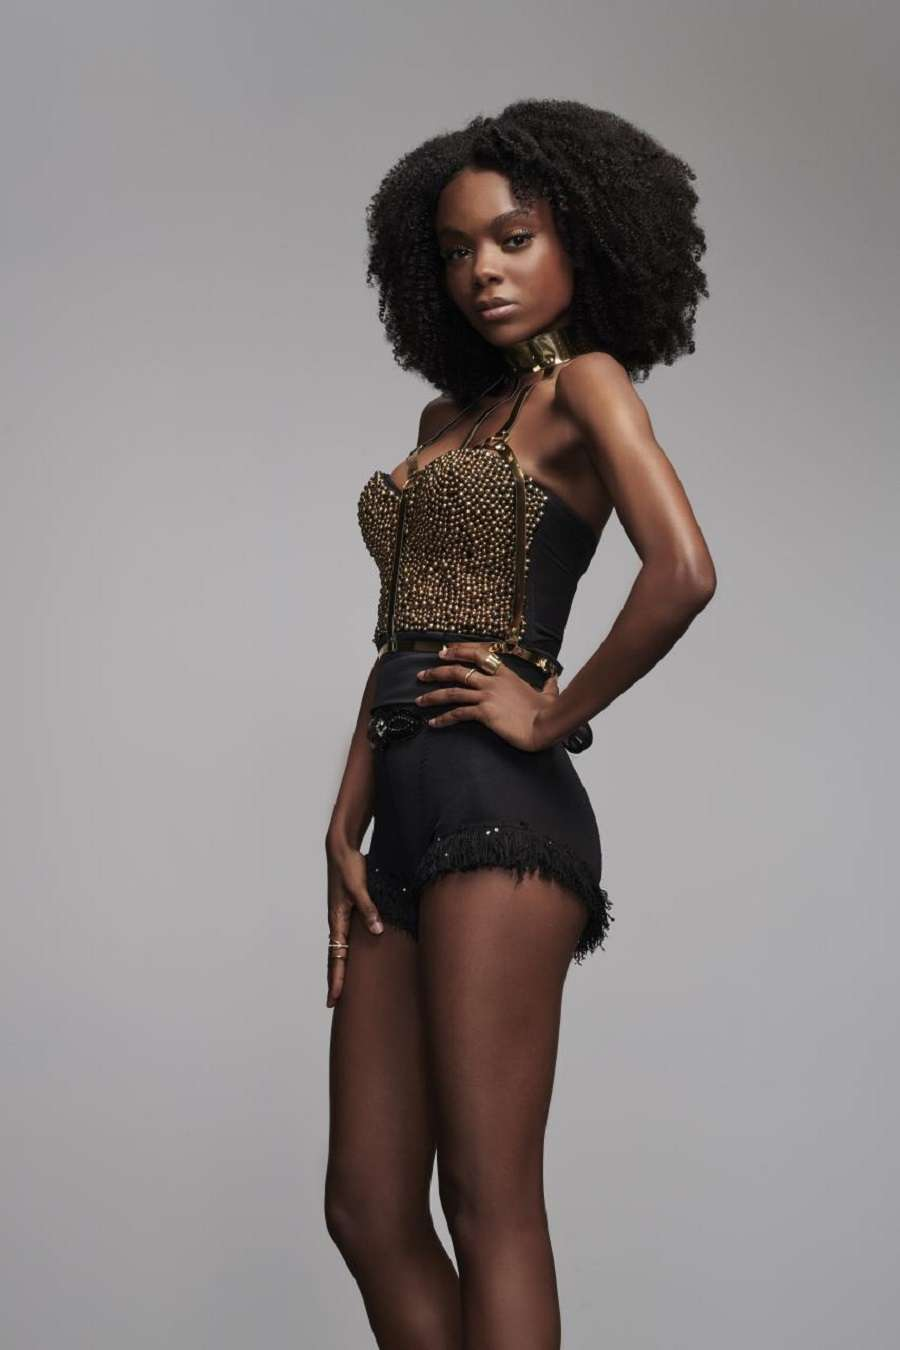 ashleigh murray picture